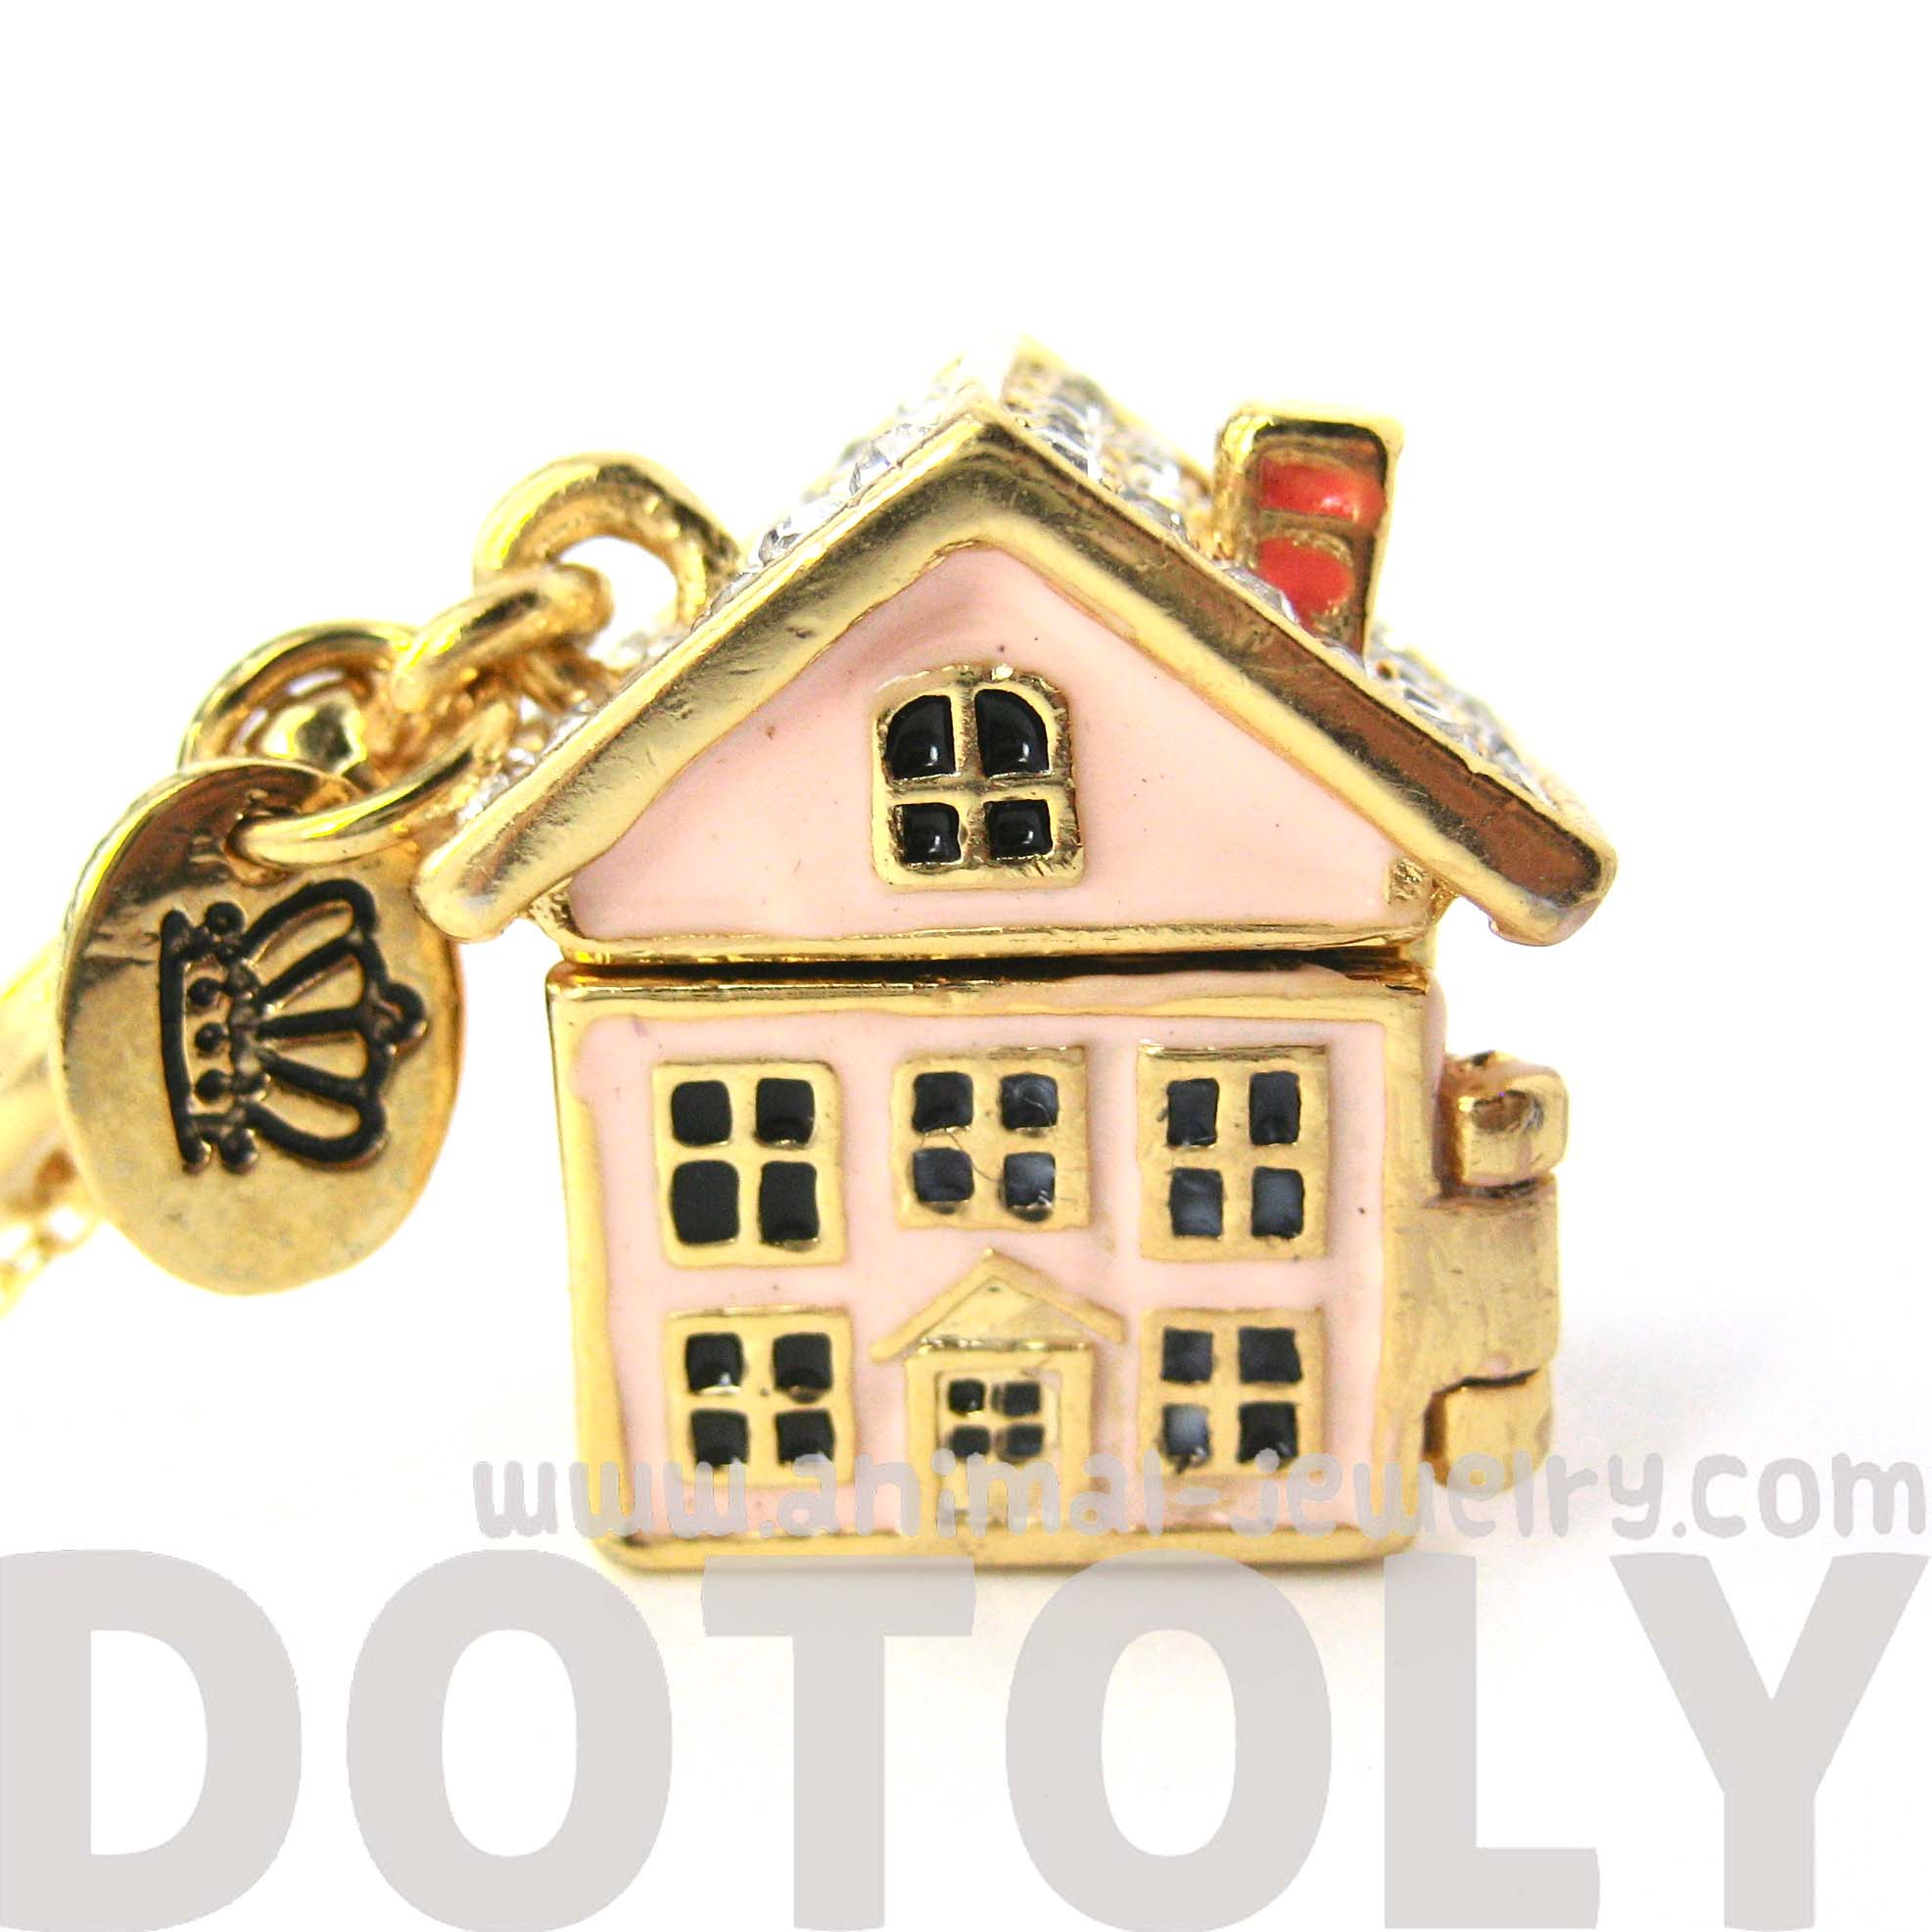 miniature-dollhouse-necklace-it-opens-up